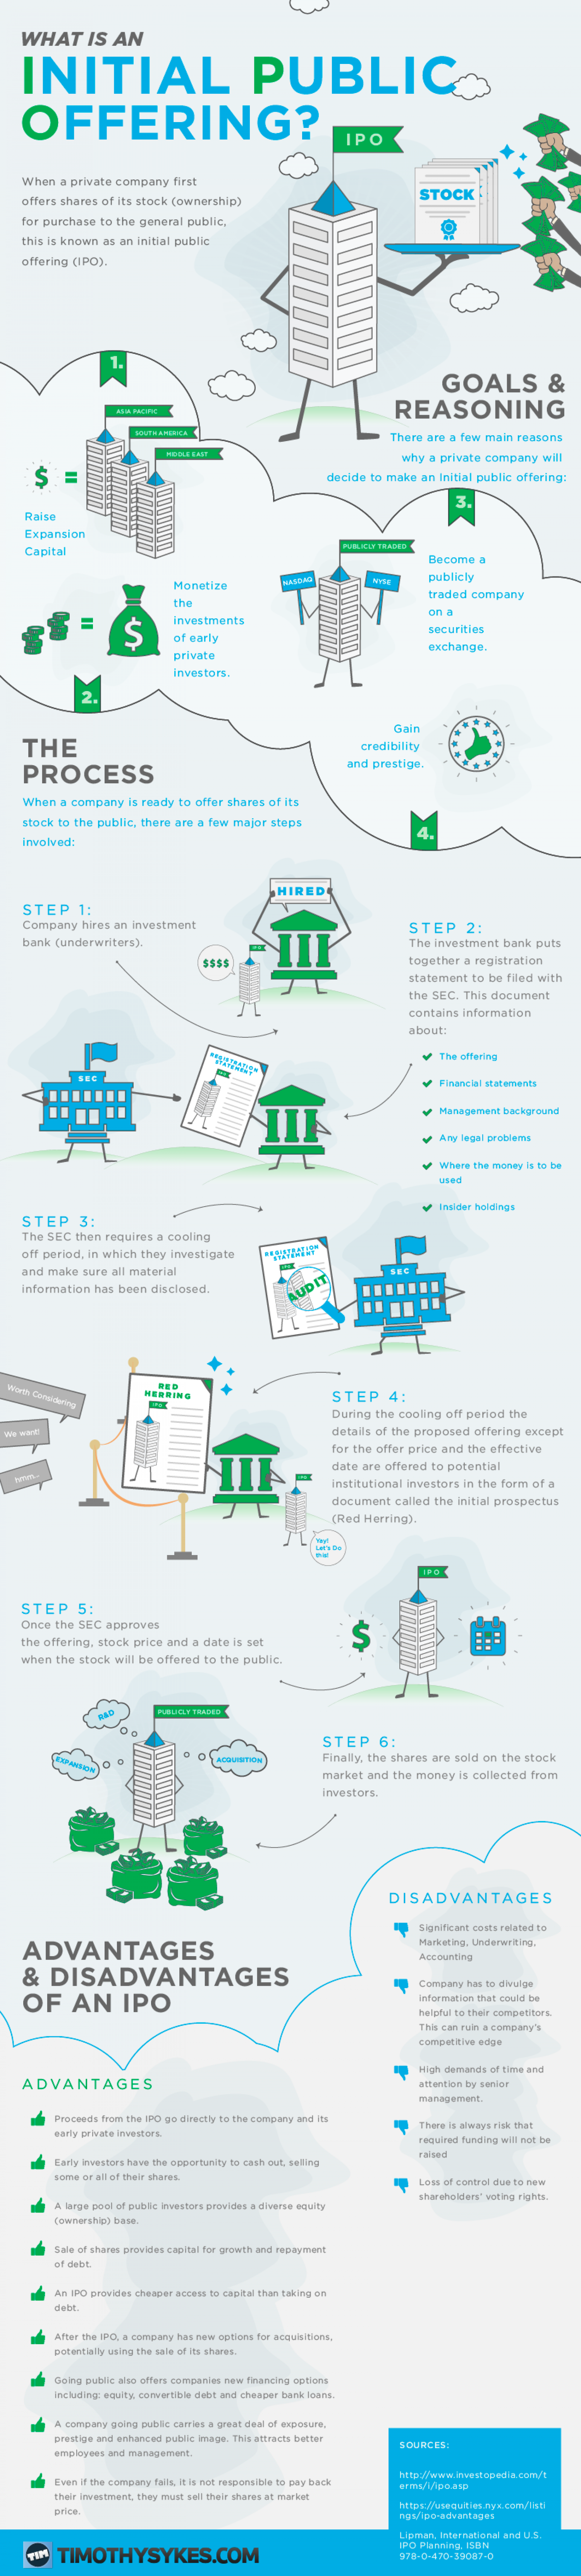 What is an Initial Public Offering? Infographic